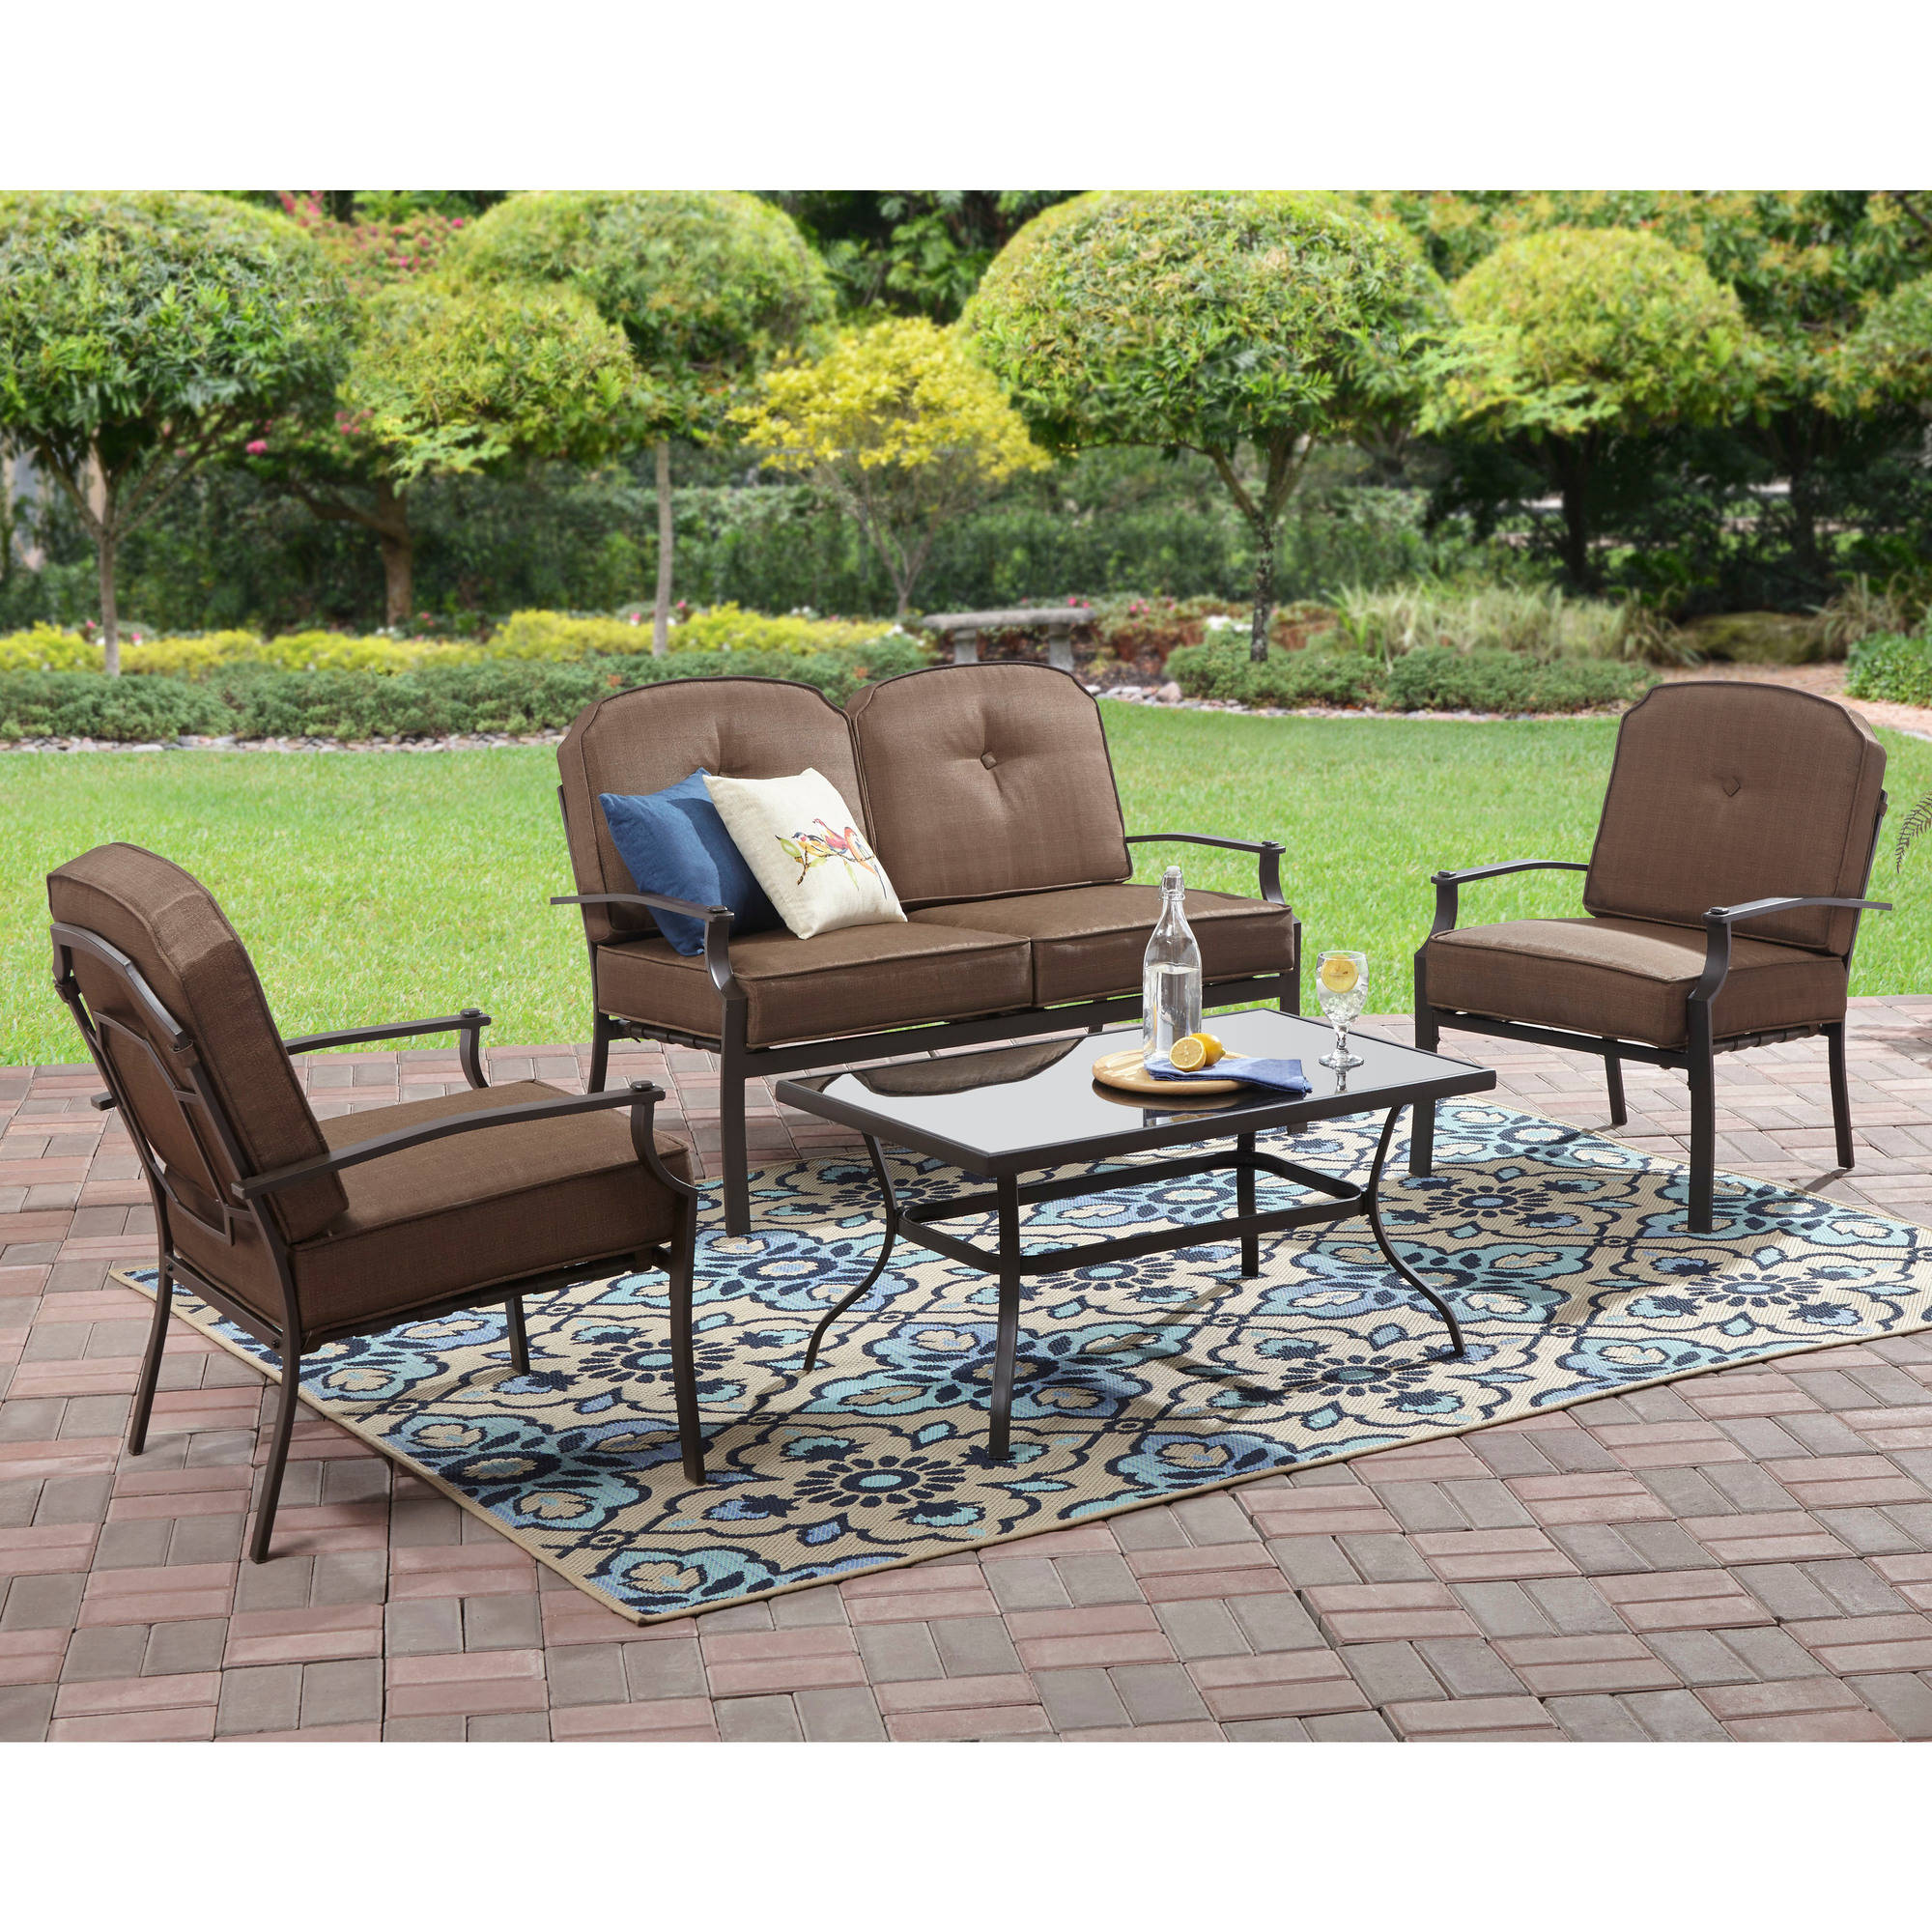 Mainstays Wentworth 4 Piece Patio Conversation Set Seats